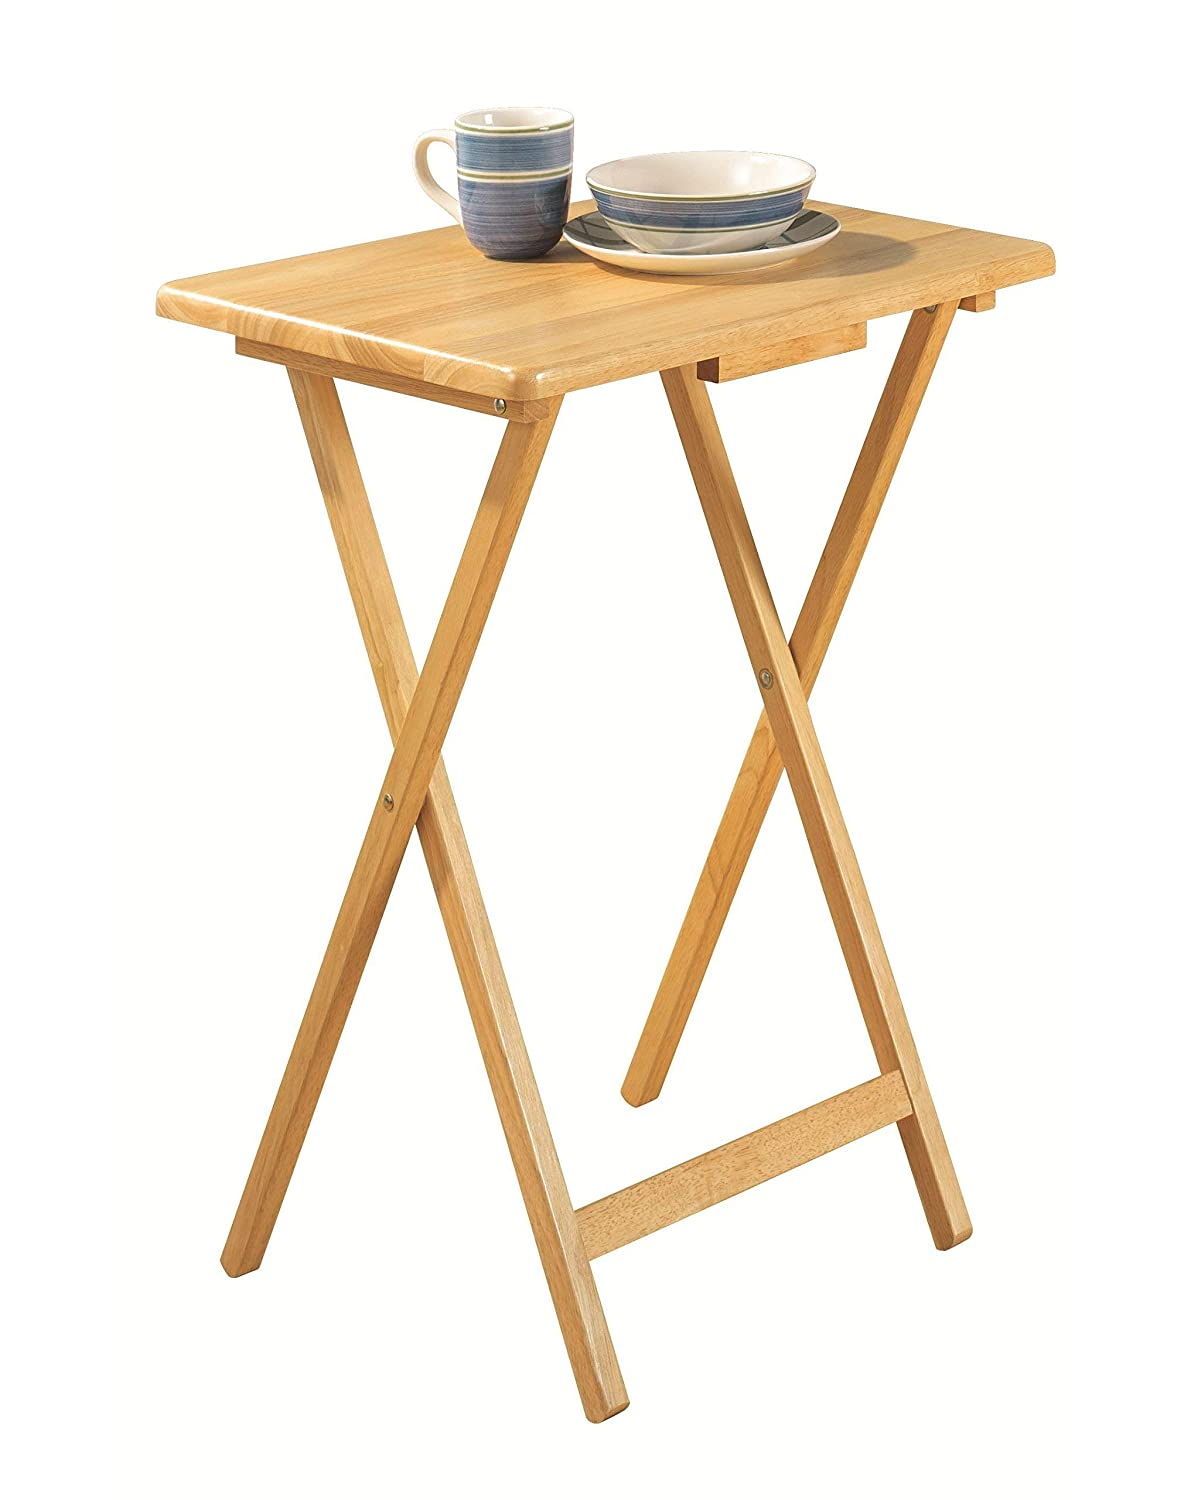 PJ Wood 5-piece Folding TV Tray Snack Table – Natural